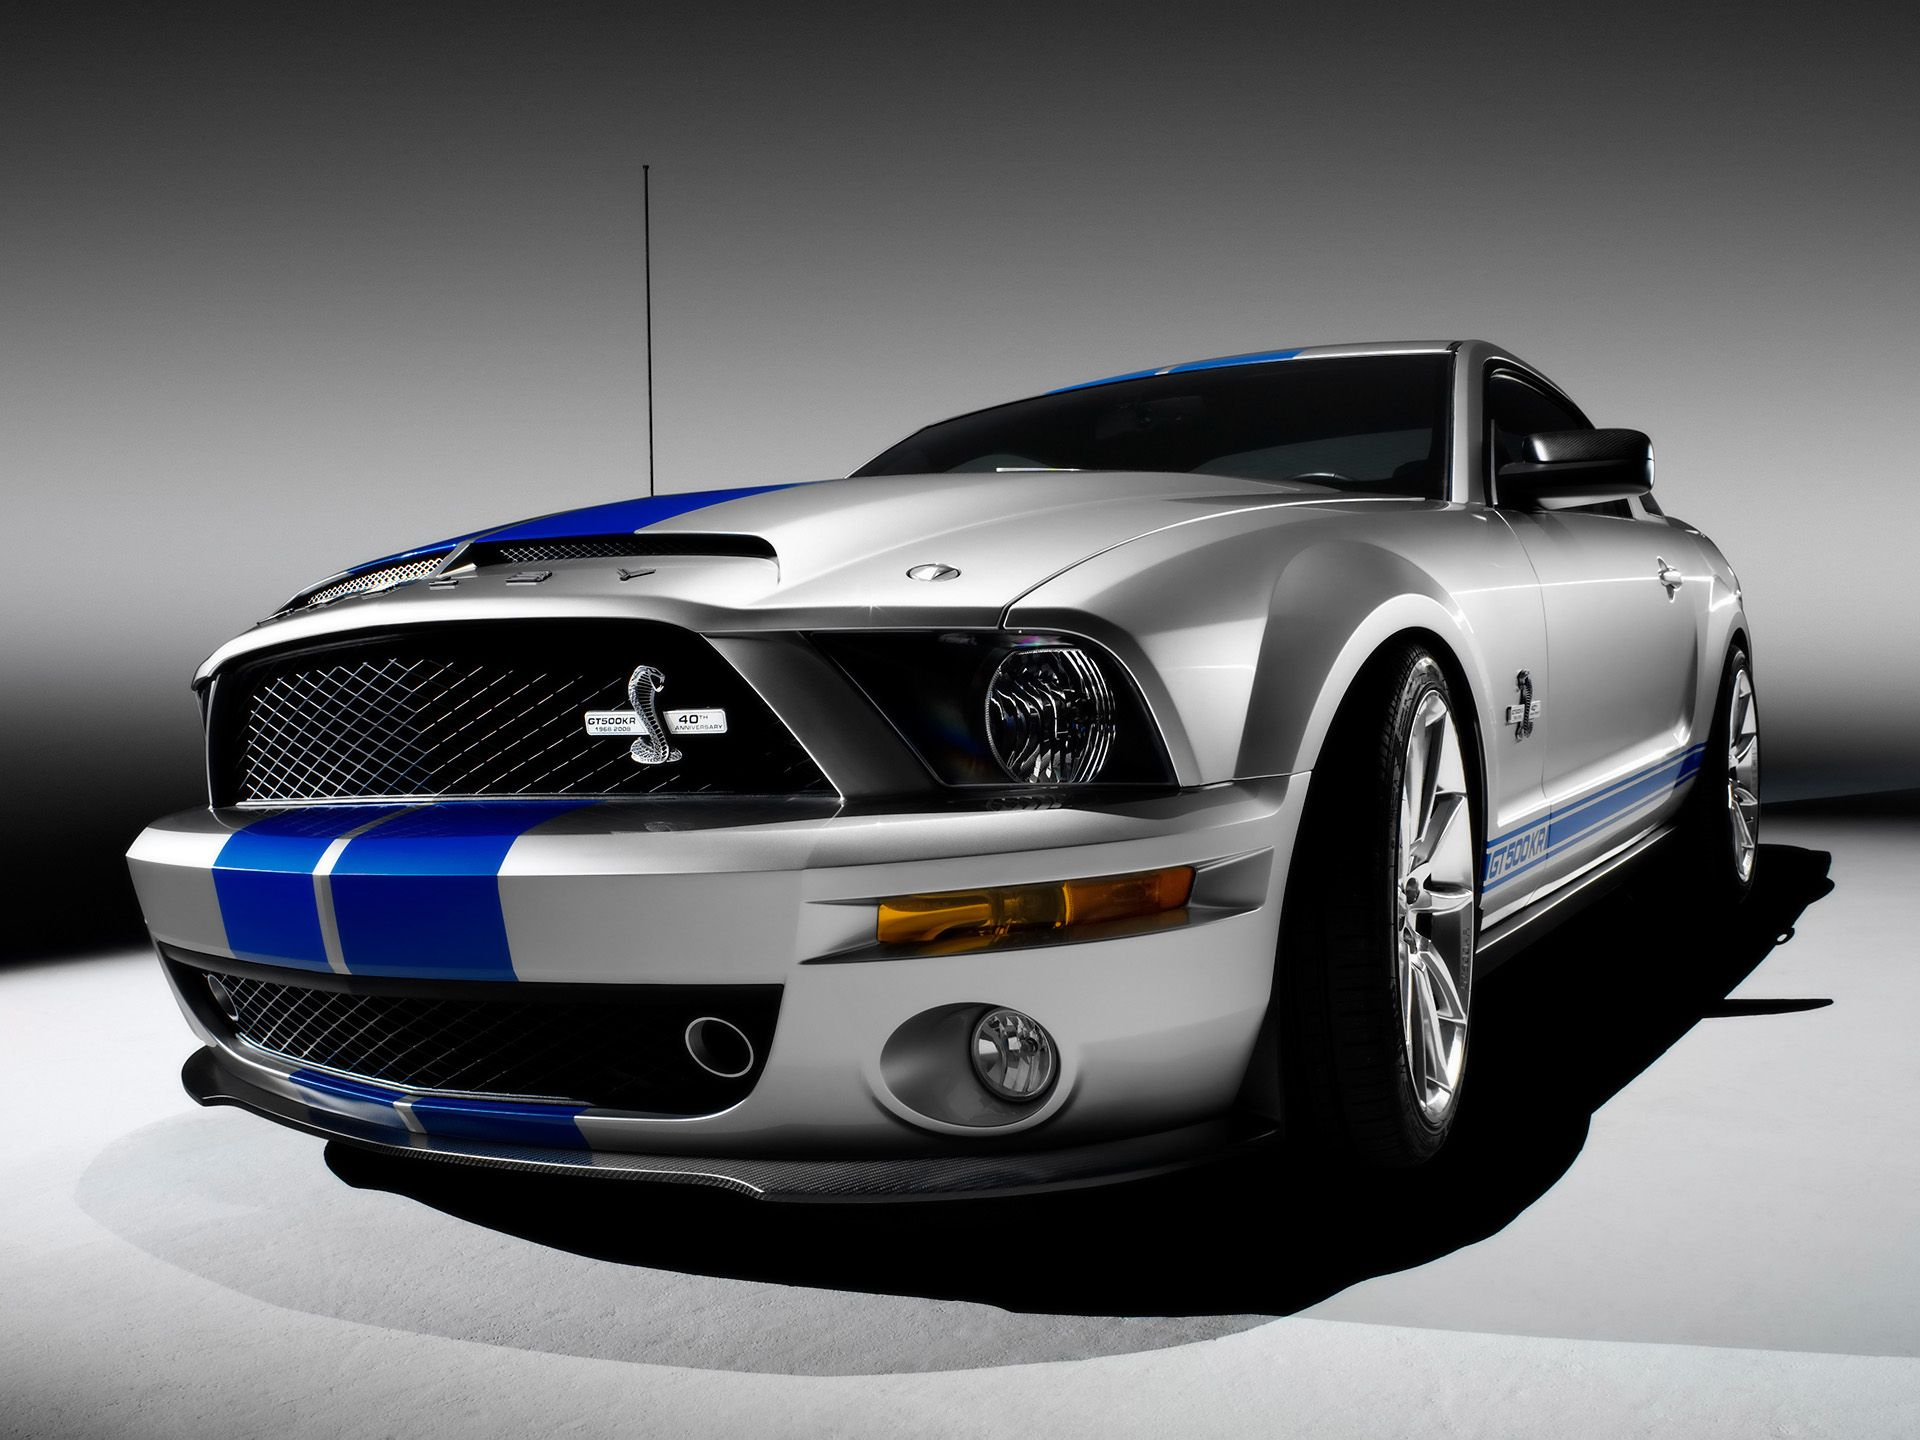 2008 ford mustang shelby gt500kr king of the road front angle 1920x1440 wallpaper